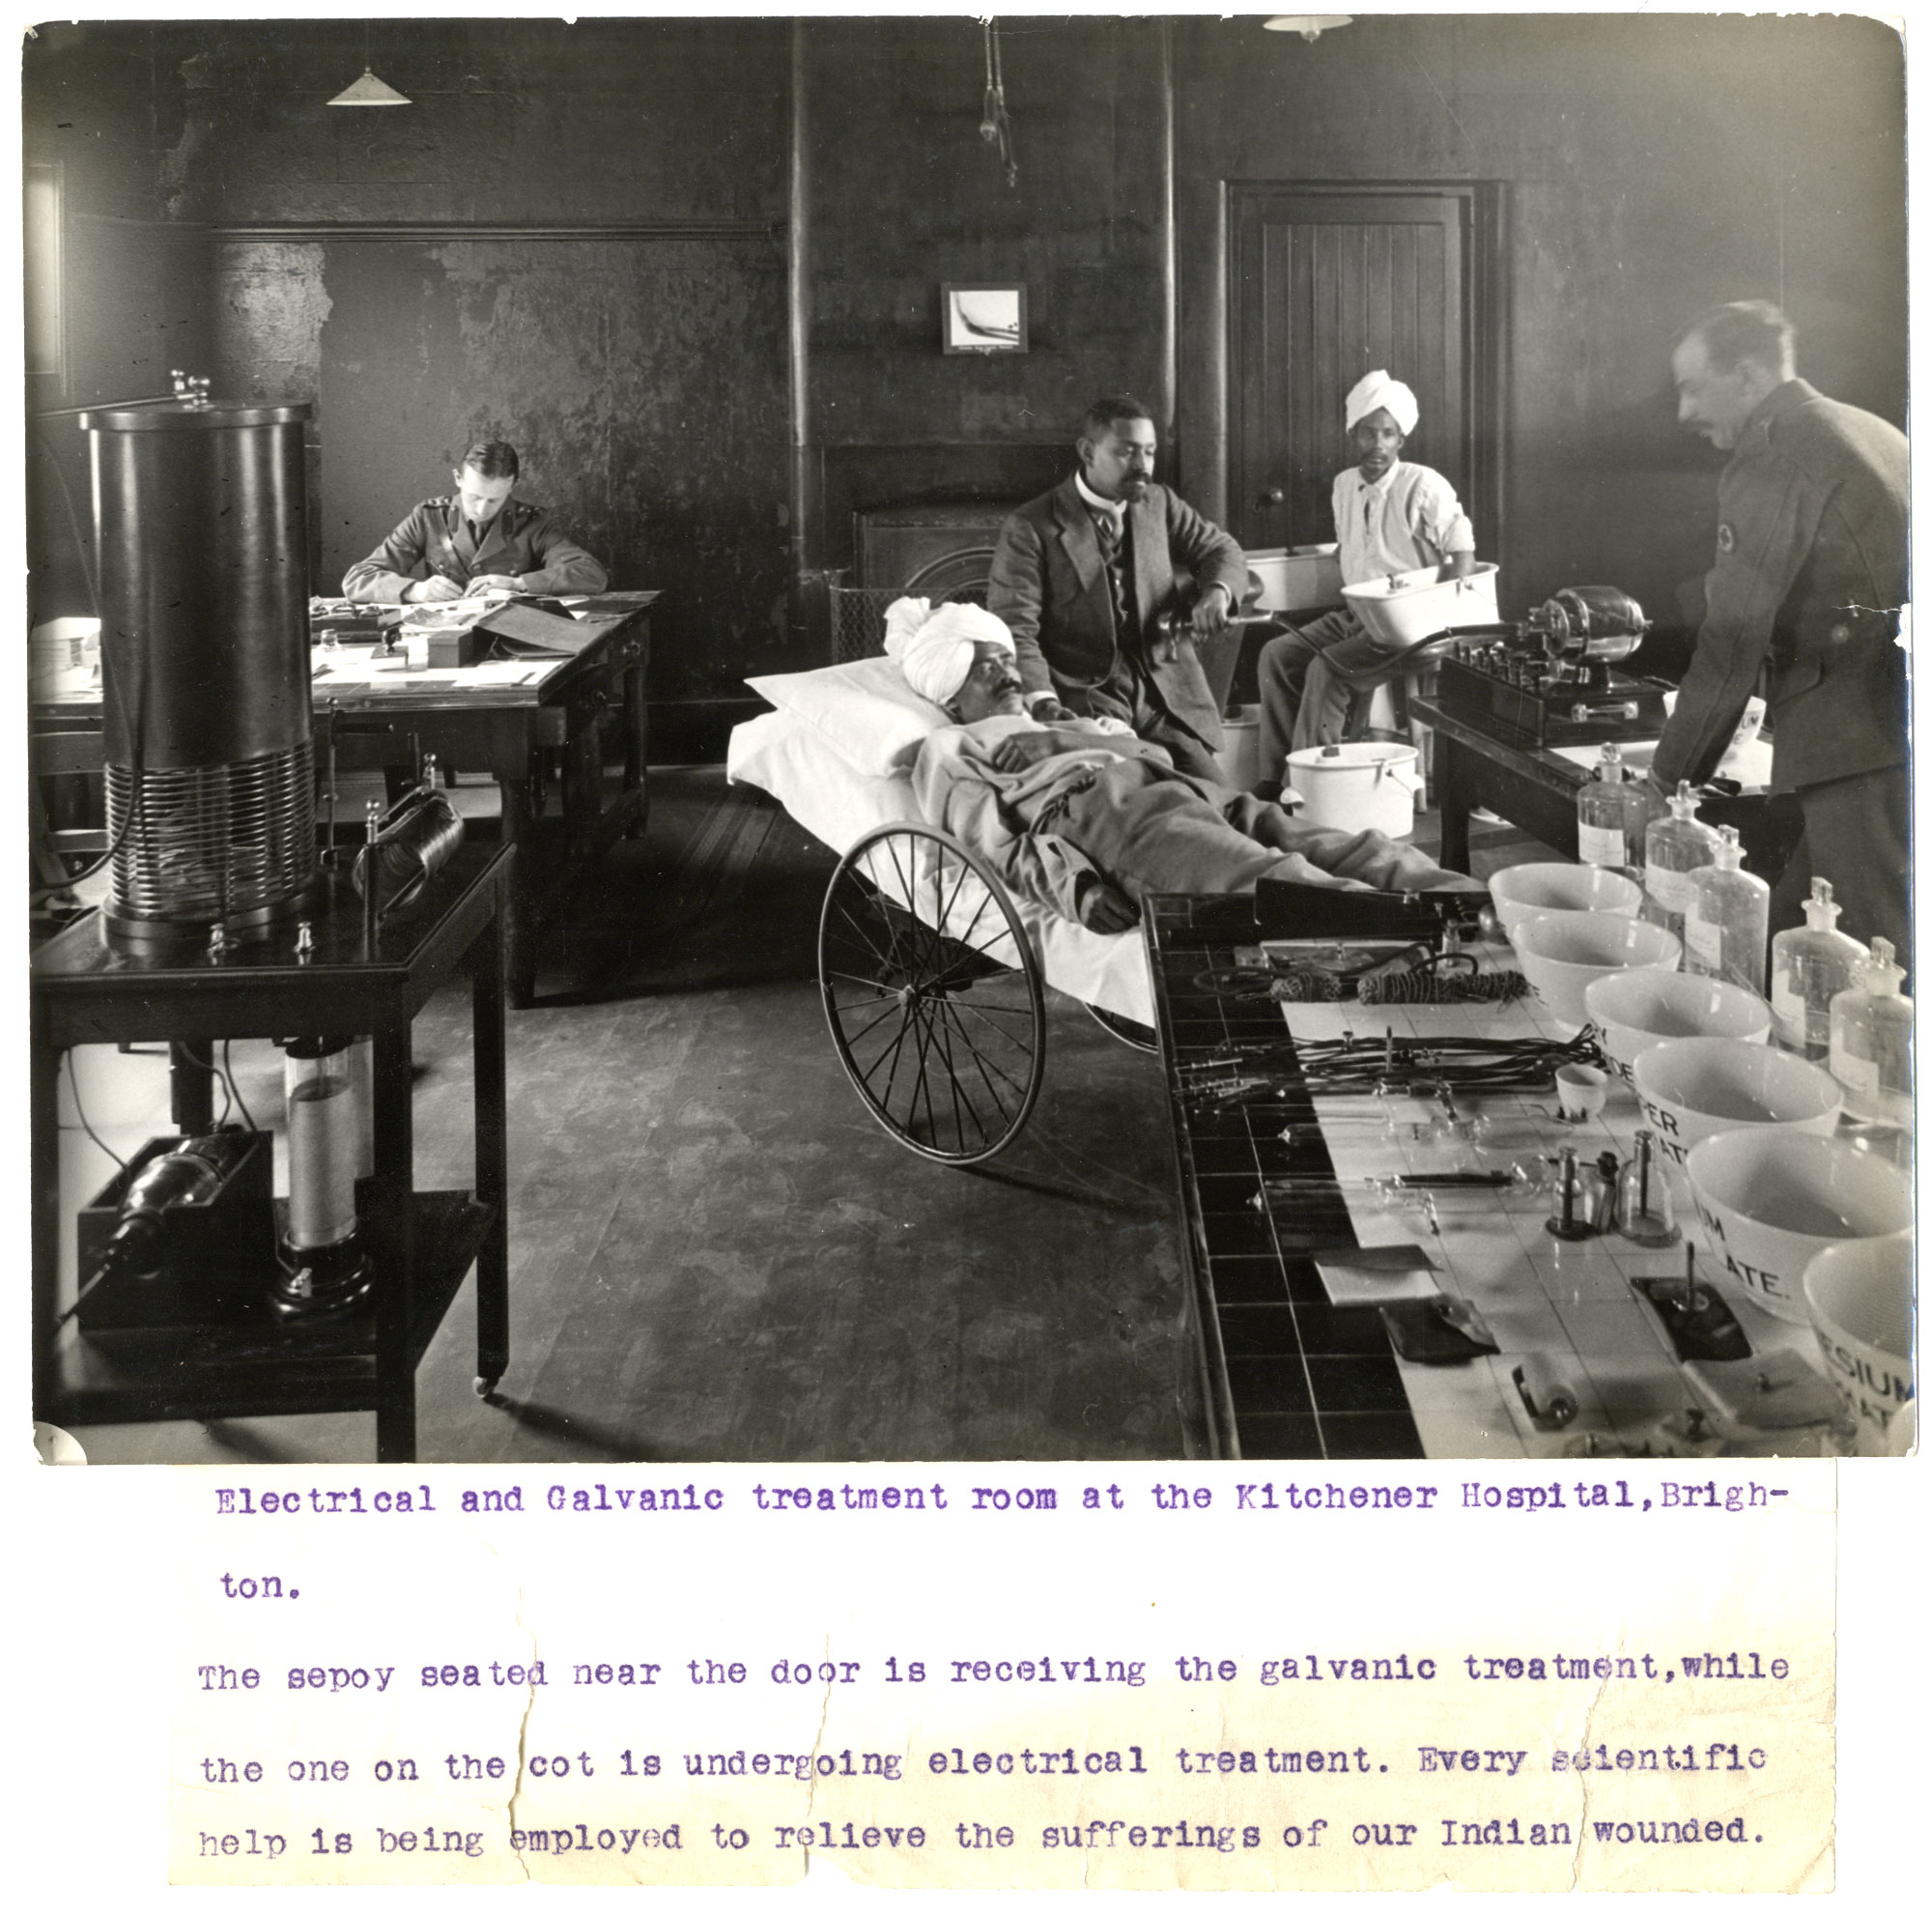 Electrical and galvanic treatment room